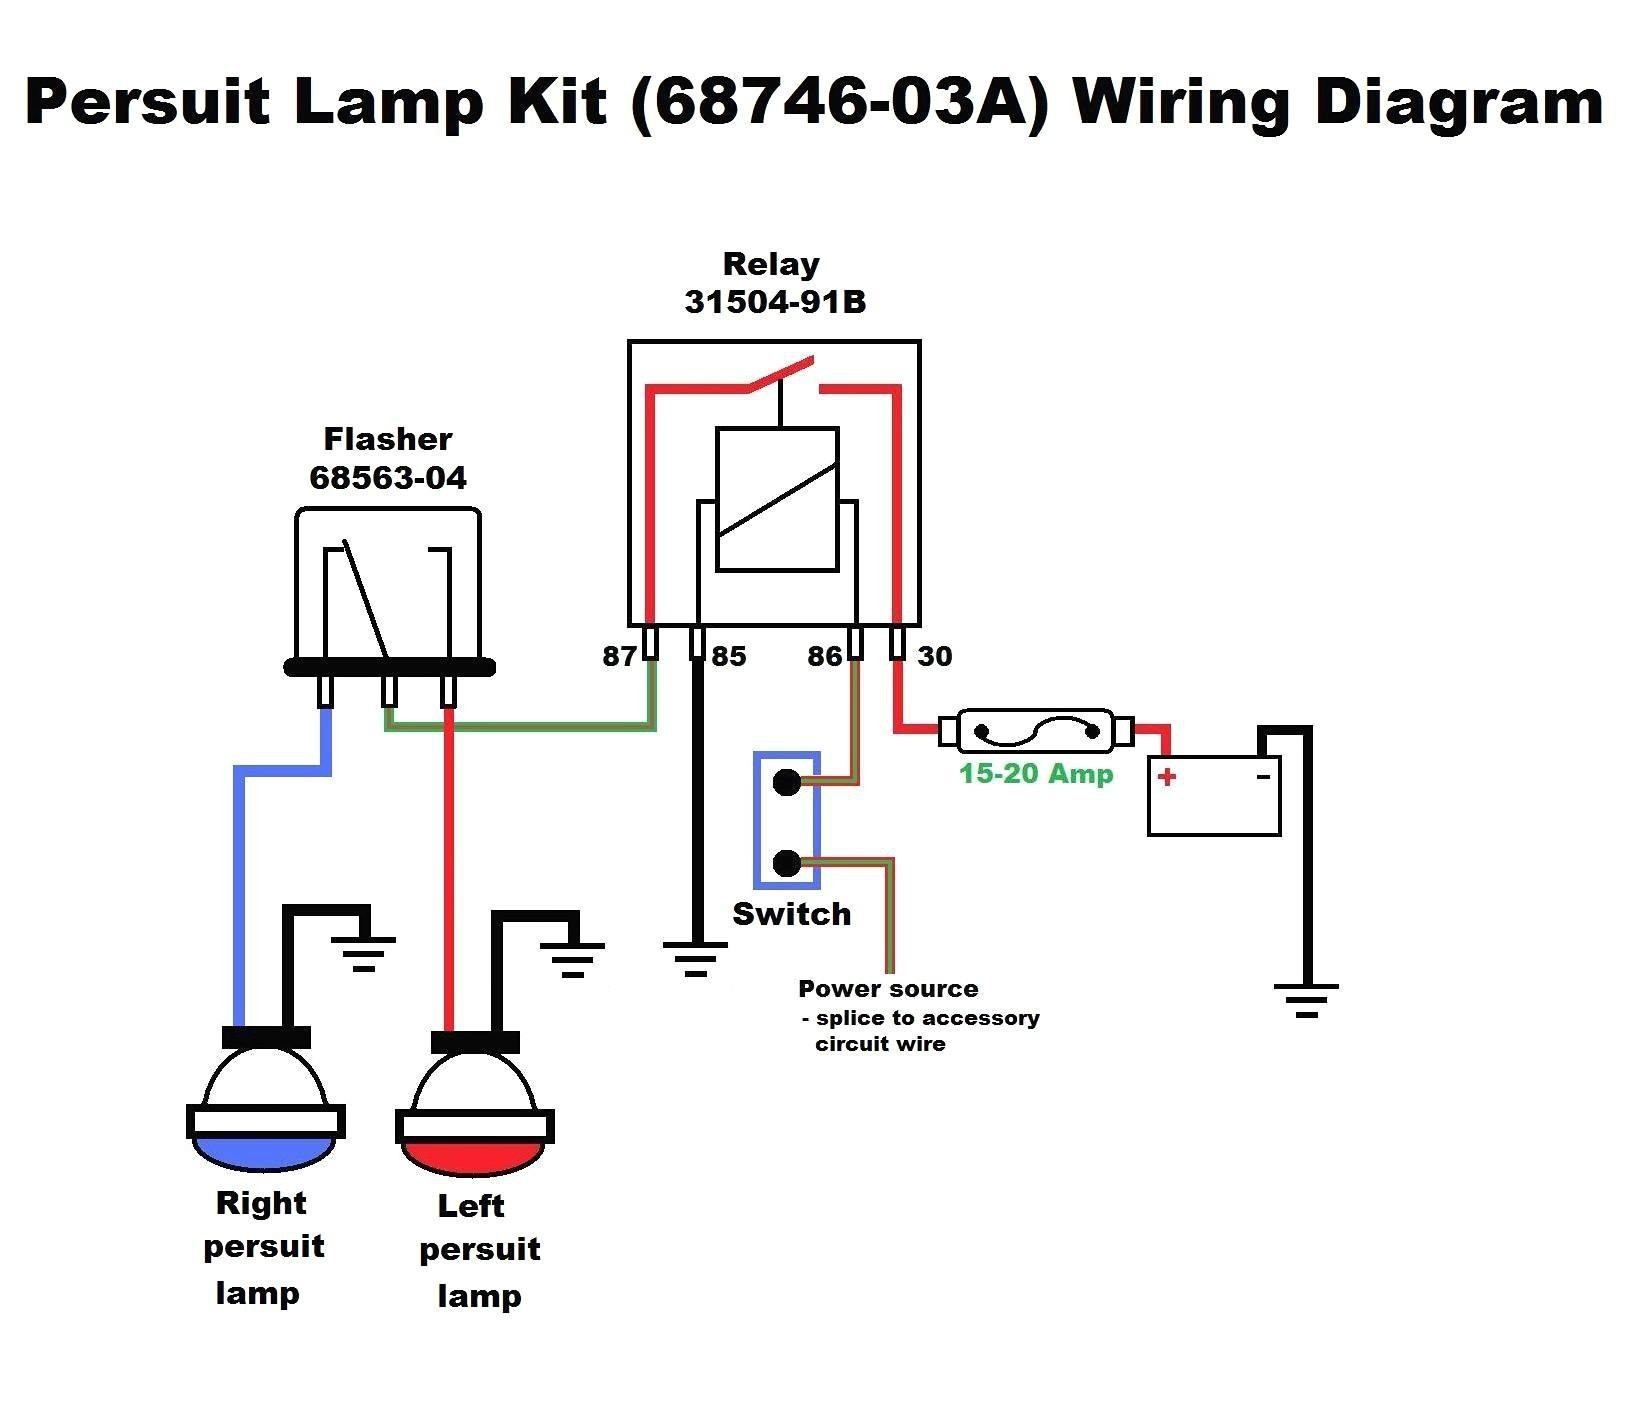 40 Amp Wiring Diagram  Amp Relay Wiring Diagram on